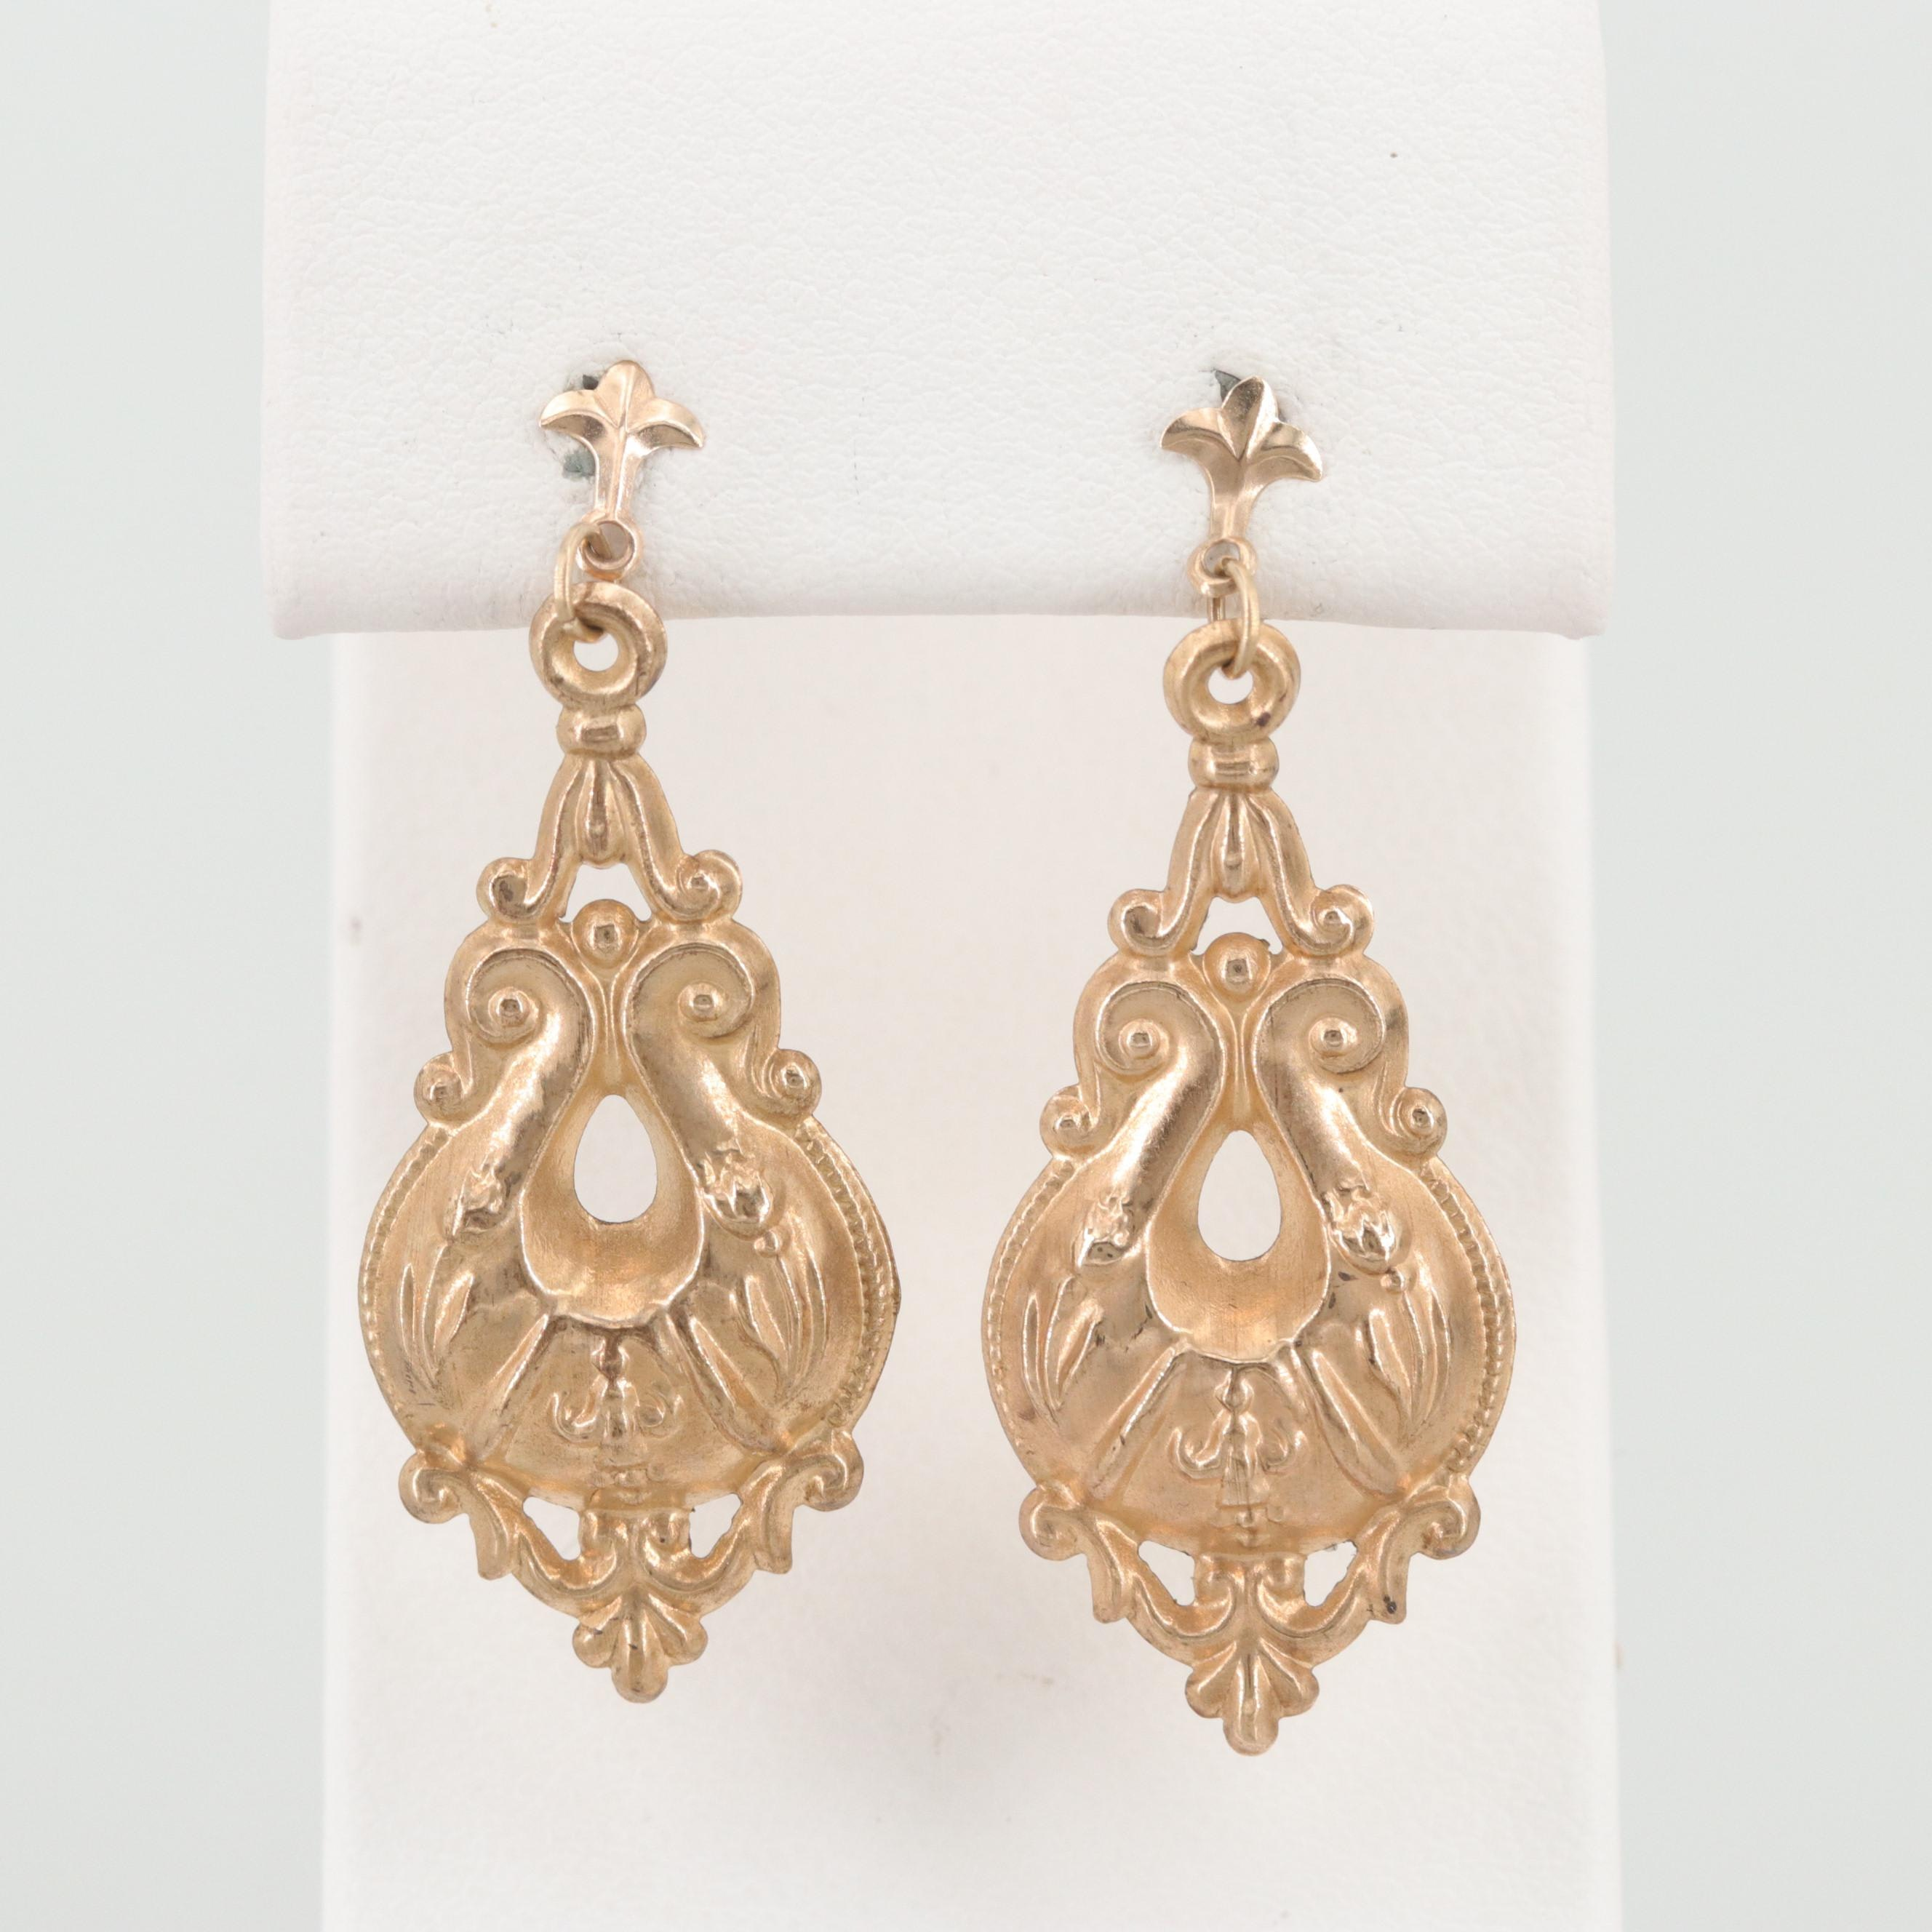 Vintage Gold Tone Dangle Earrings with 14K Gold Findings